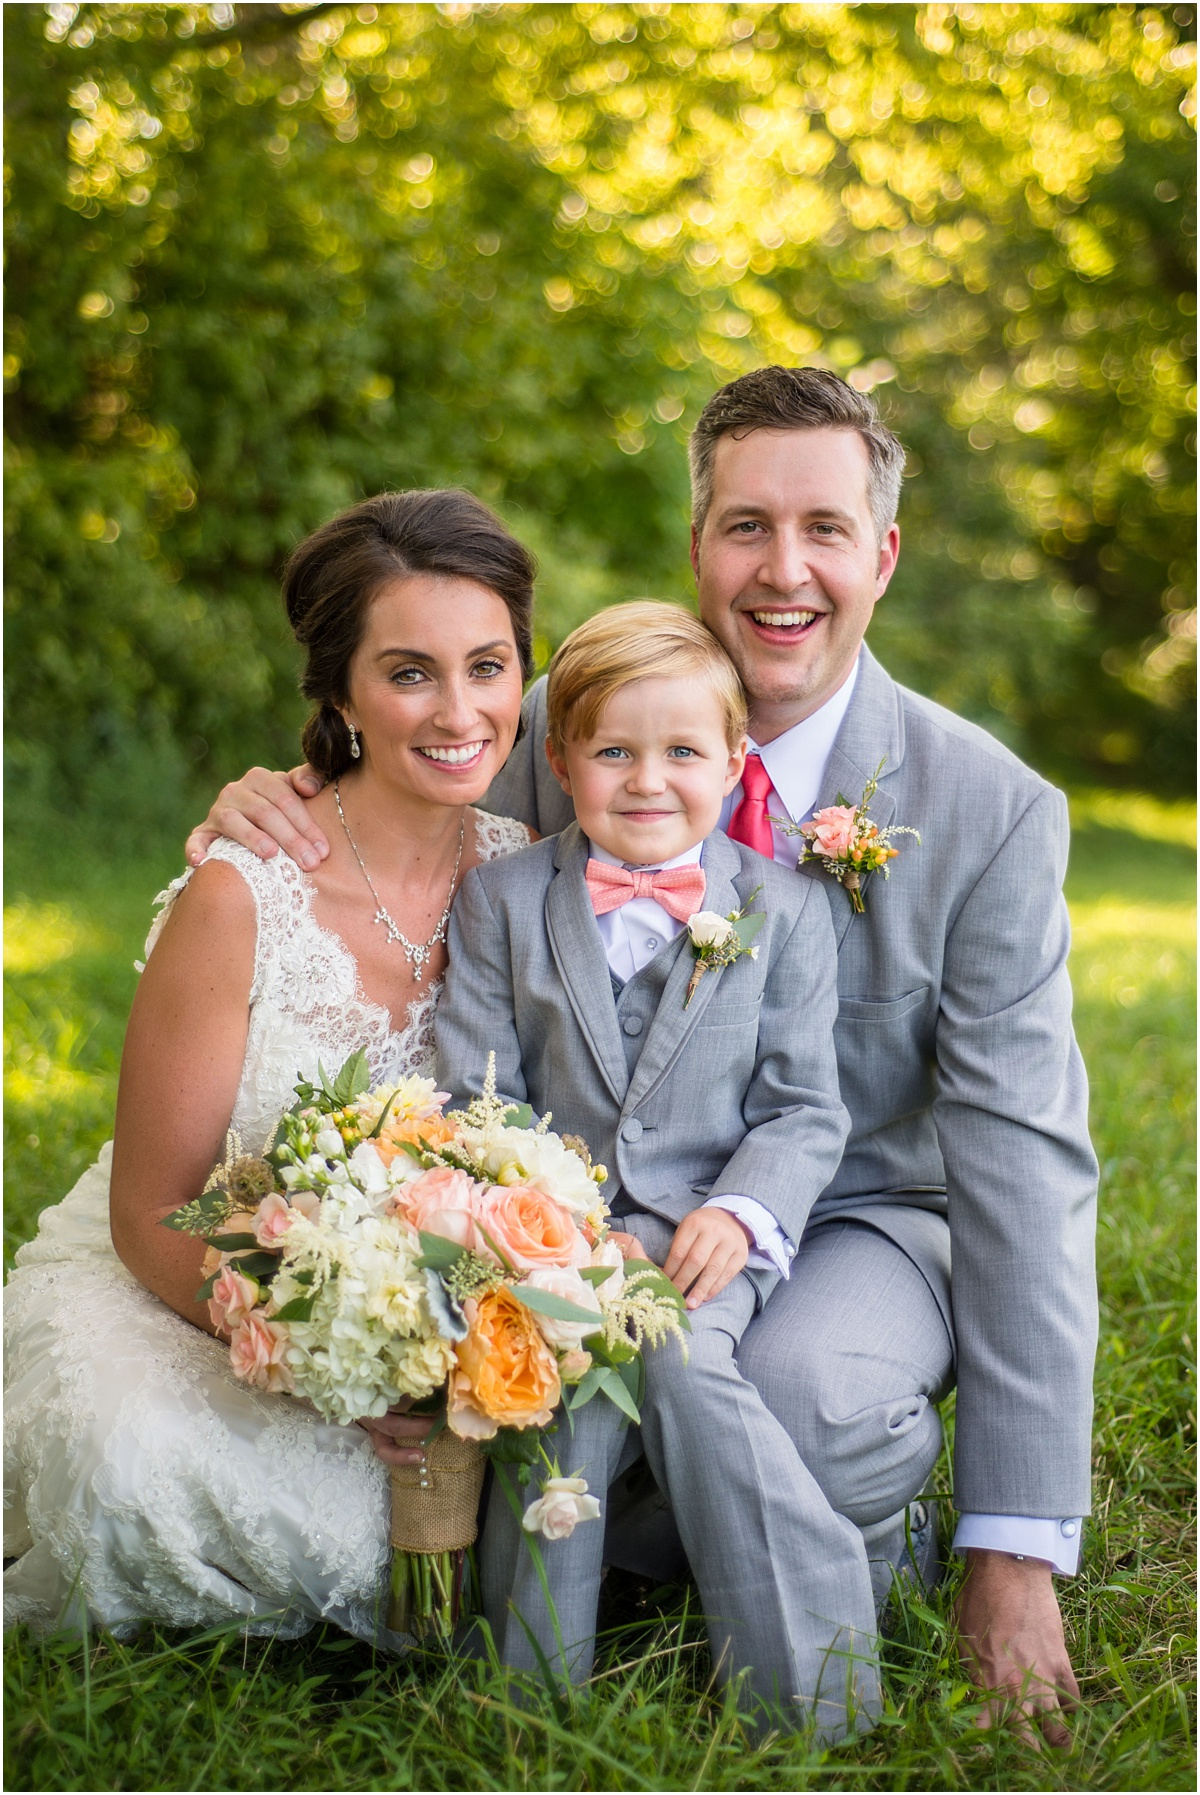 Greg Smit Photography Nashville wedding photographer Mint Springs Farm_0087